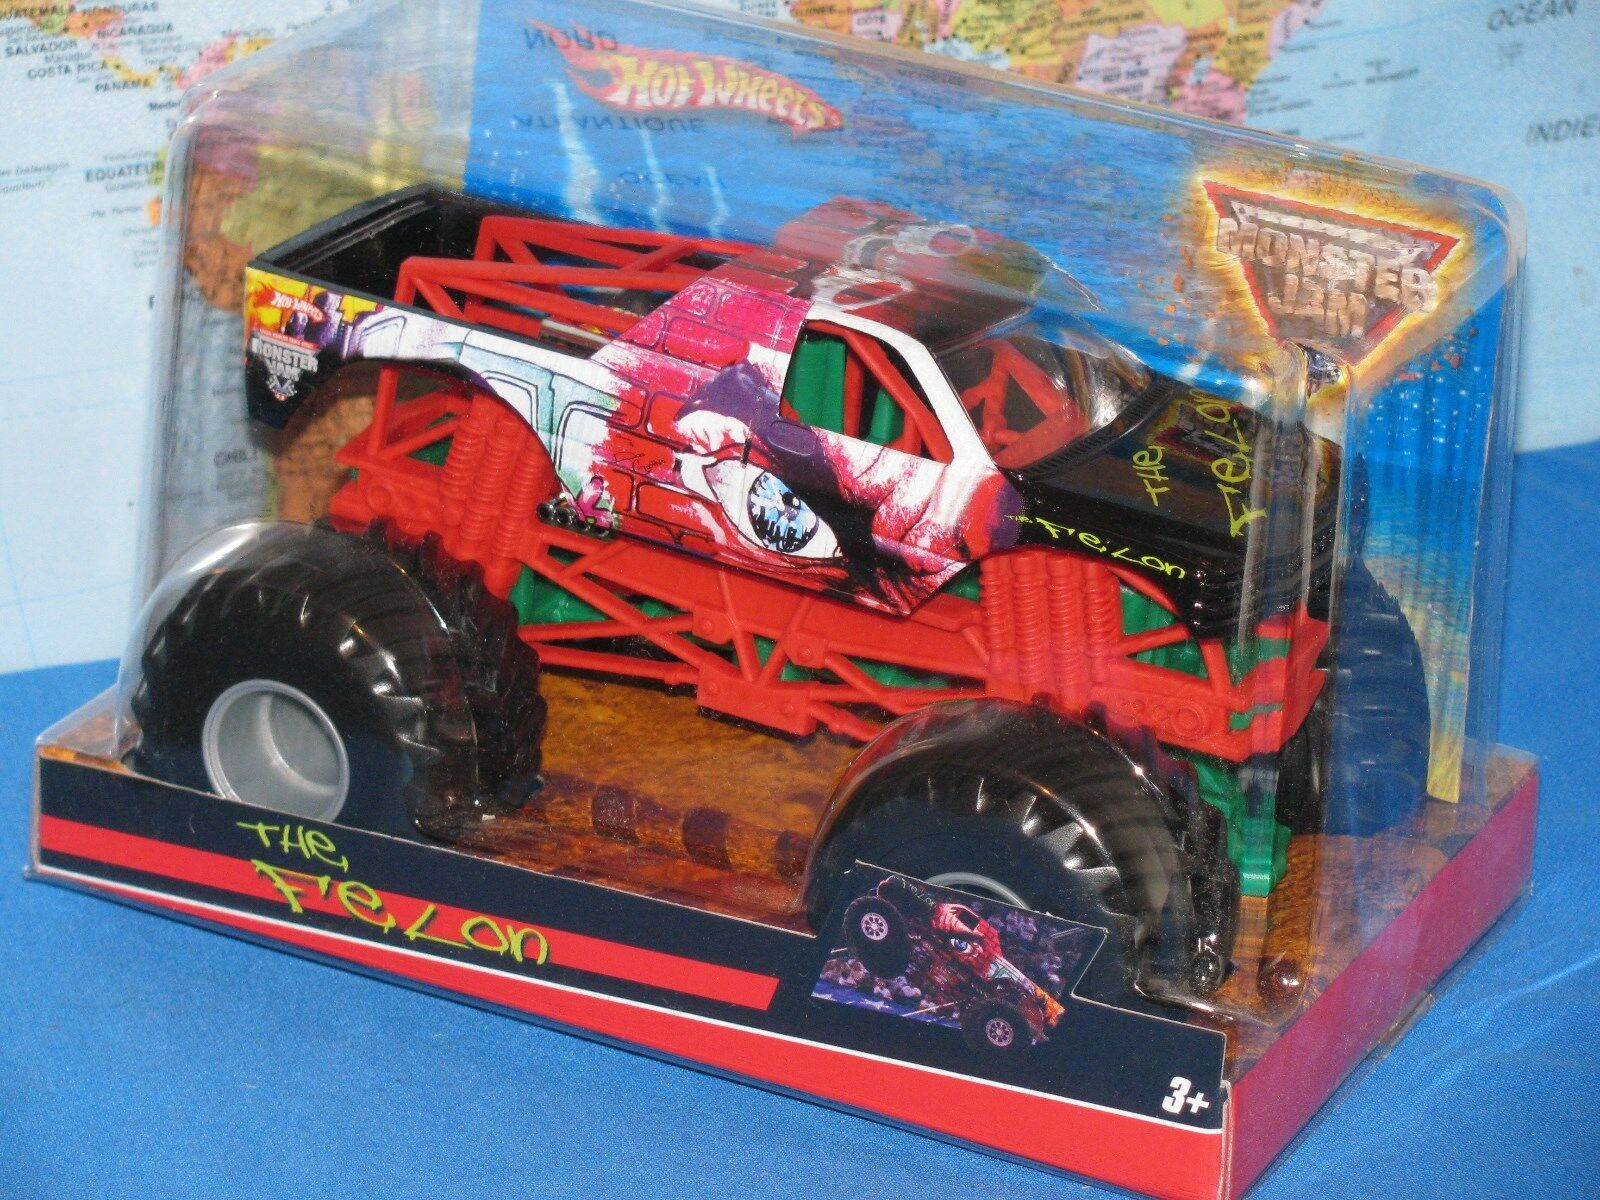 1 1 1 24 Hot Wheels Mermelada de Monstruo Camión la Criminal Metal Fundido Advance 2f86f2